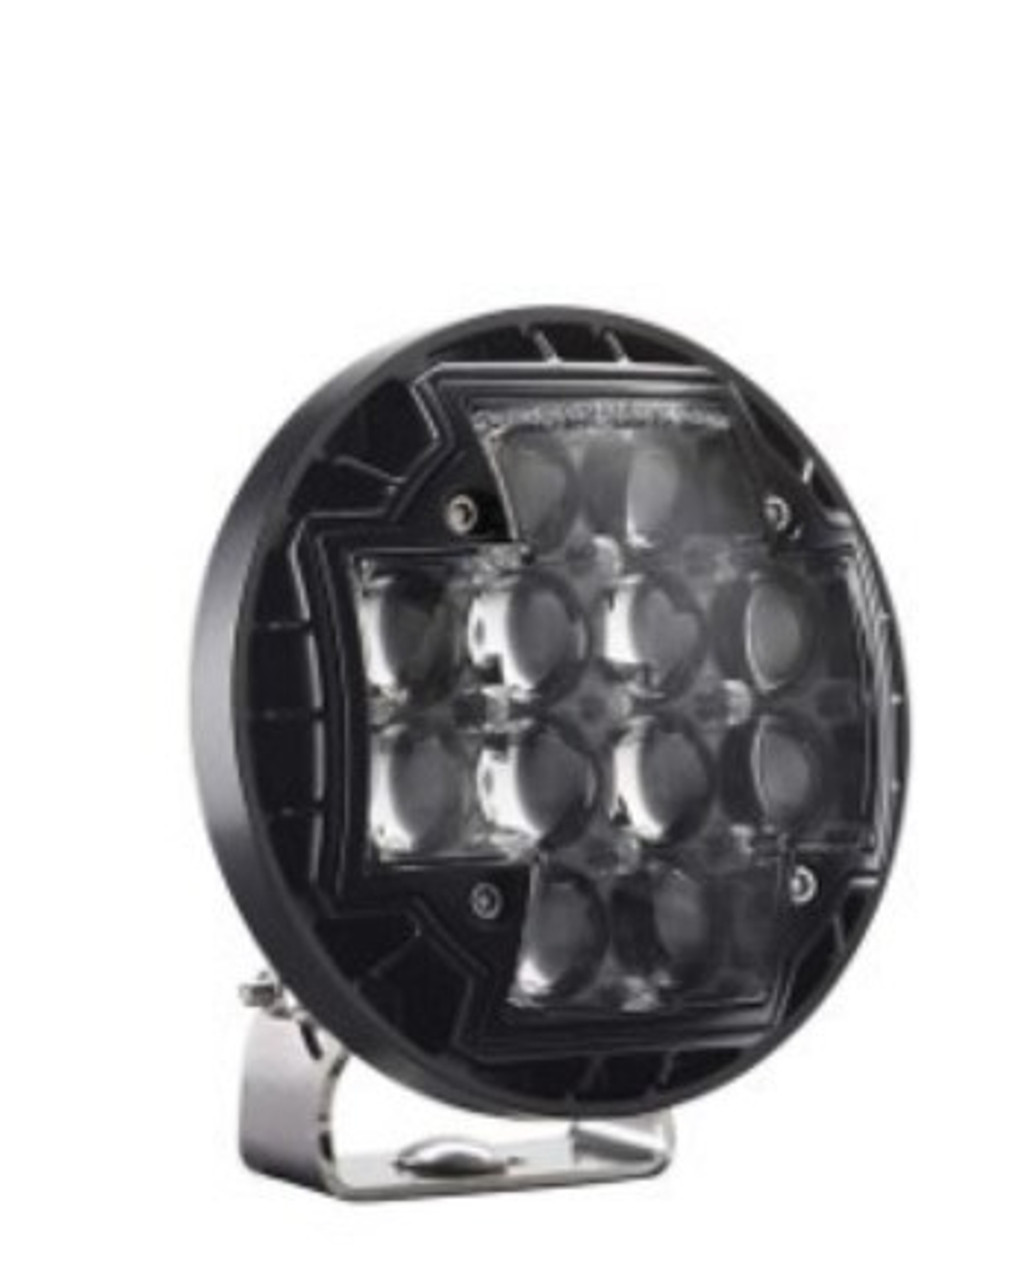 RVD63341 - LED Driving Lamp Hyperspot Rigid. R2-46 Series. Multi-Volt 9-36V. IP69. 3645lm. 12 LEDs. RoadVision. Rigid Industries. Ultimate LED.